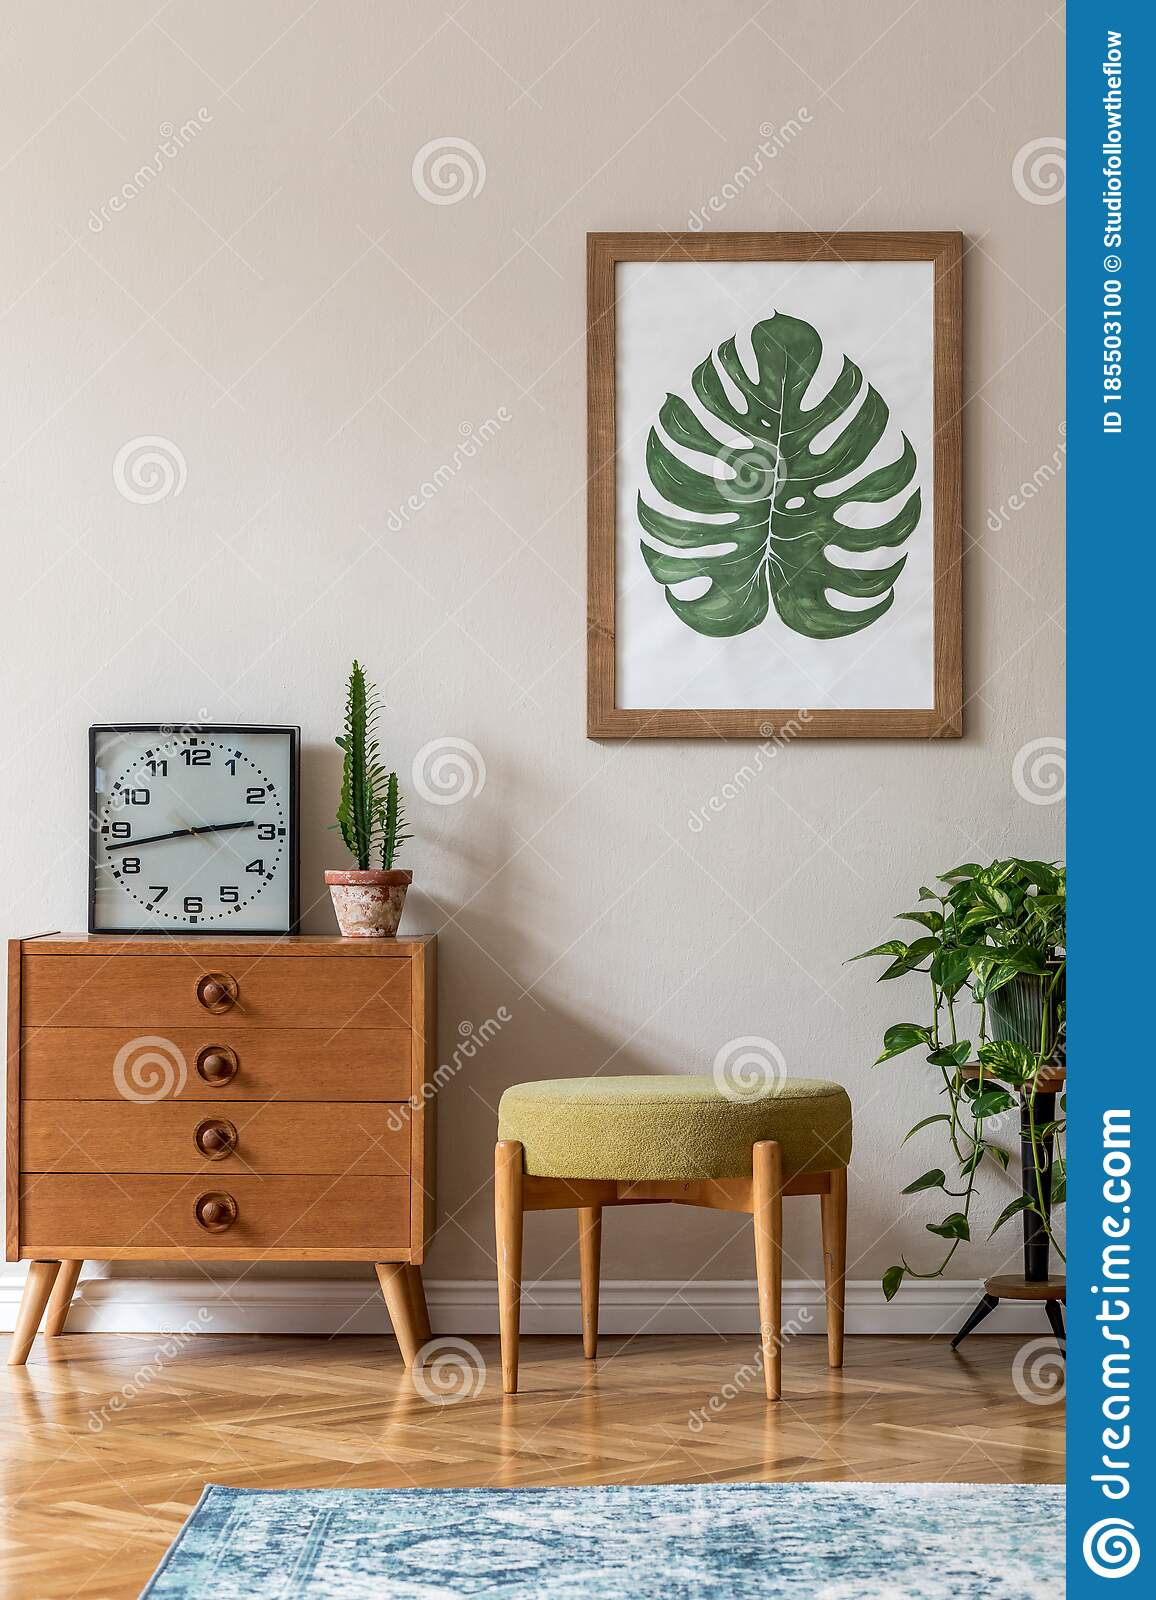 vintage interior design of living room with design retro pouf and commode stock photo image of empty apartment 185503100